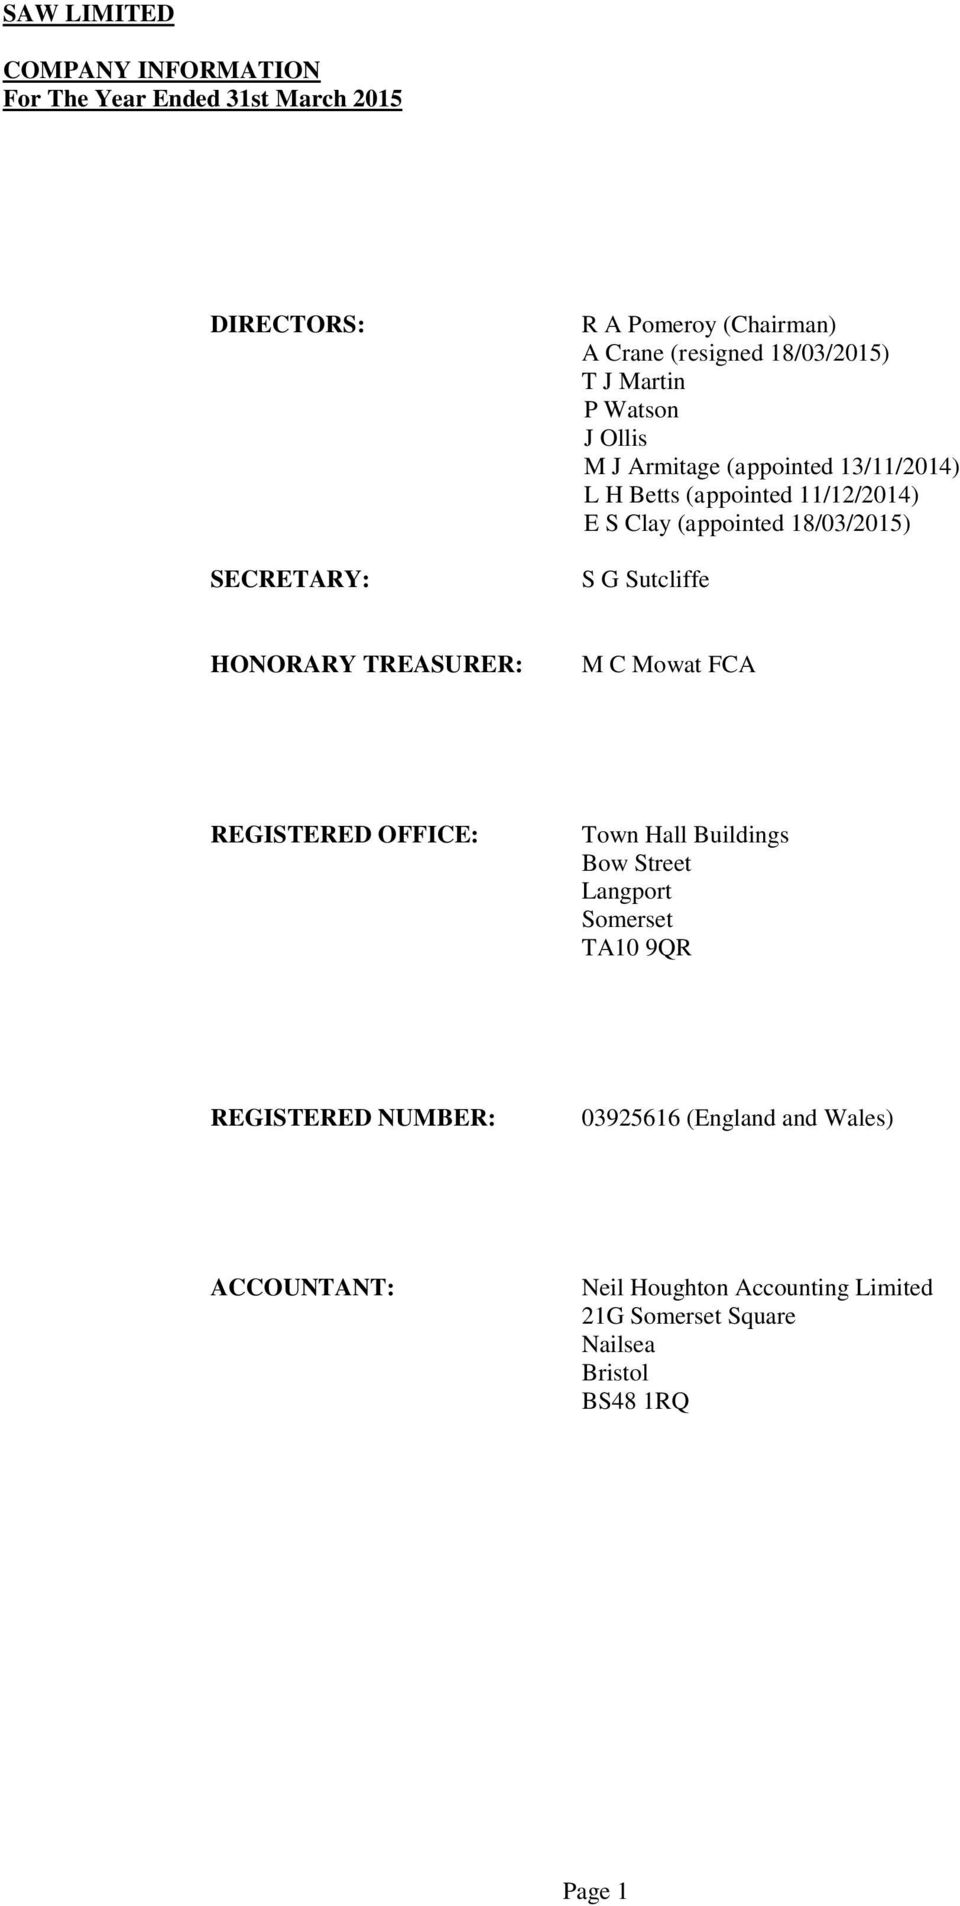 TREASURER: M C Mowat FCA REGISTERED OFFICE: Town Hall Buildings Bow Street Langport Somerset TA10 9QR REGISTERED NUMBER: